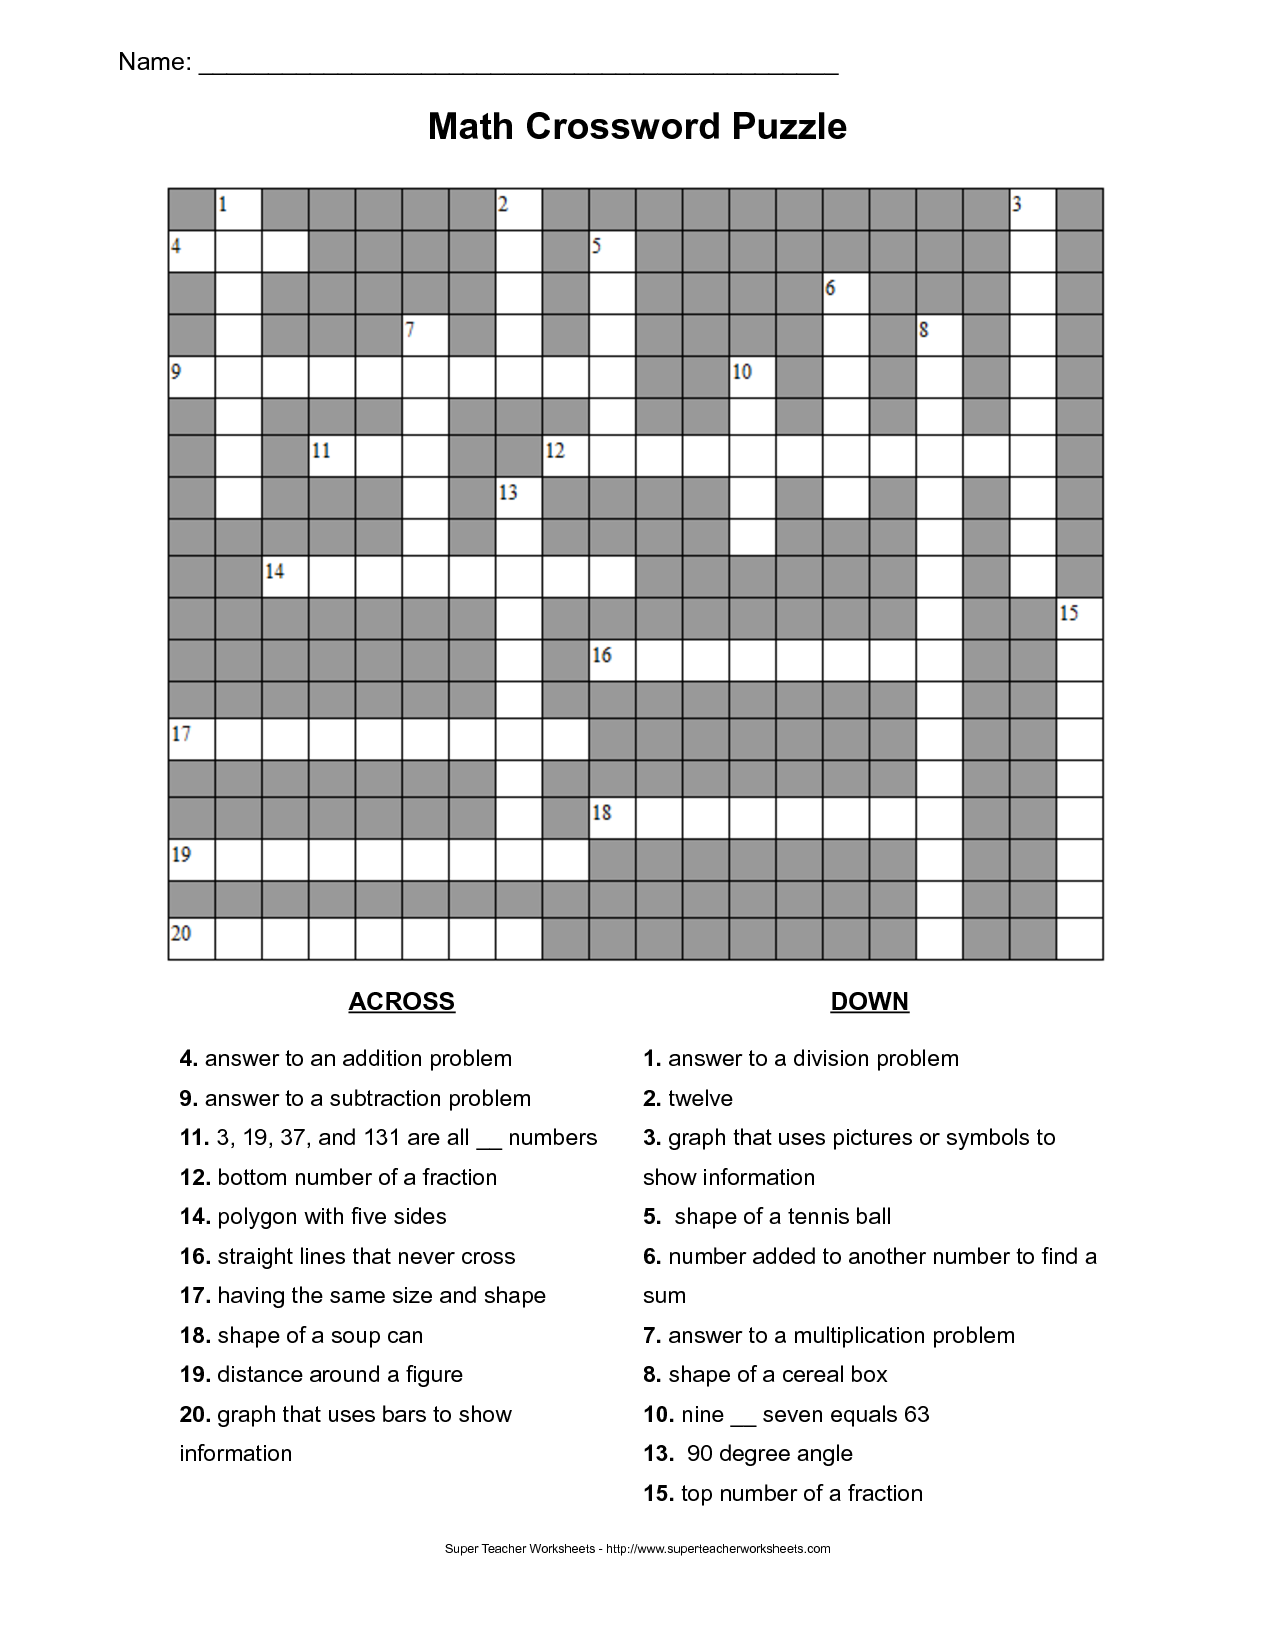 Math Crossword Puzzle Worksheets Versaldobip – Math Puzzles Worksheet